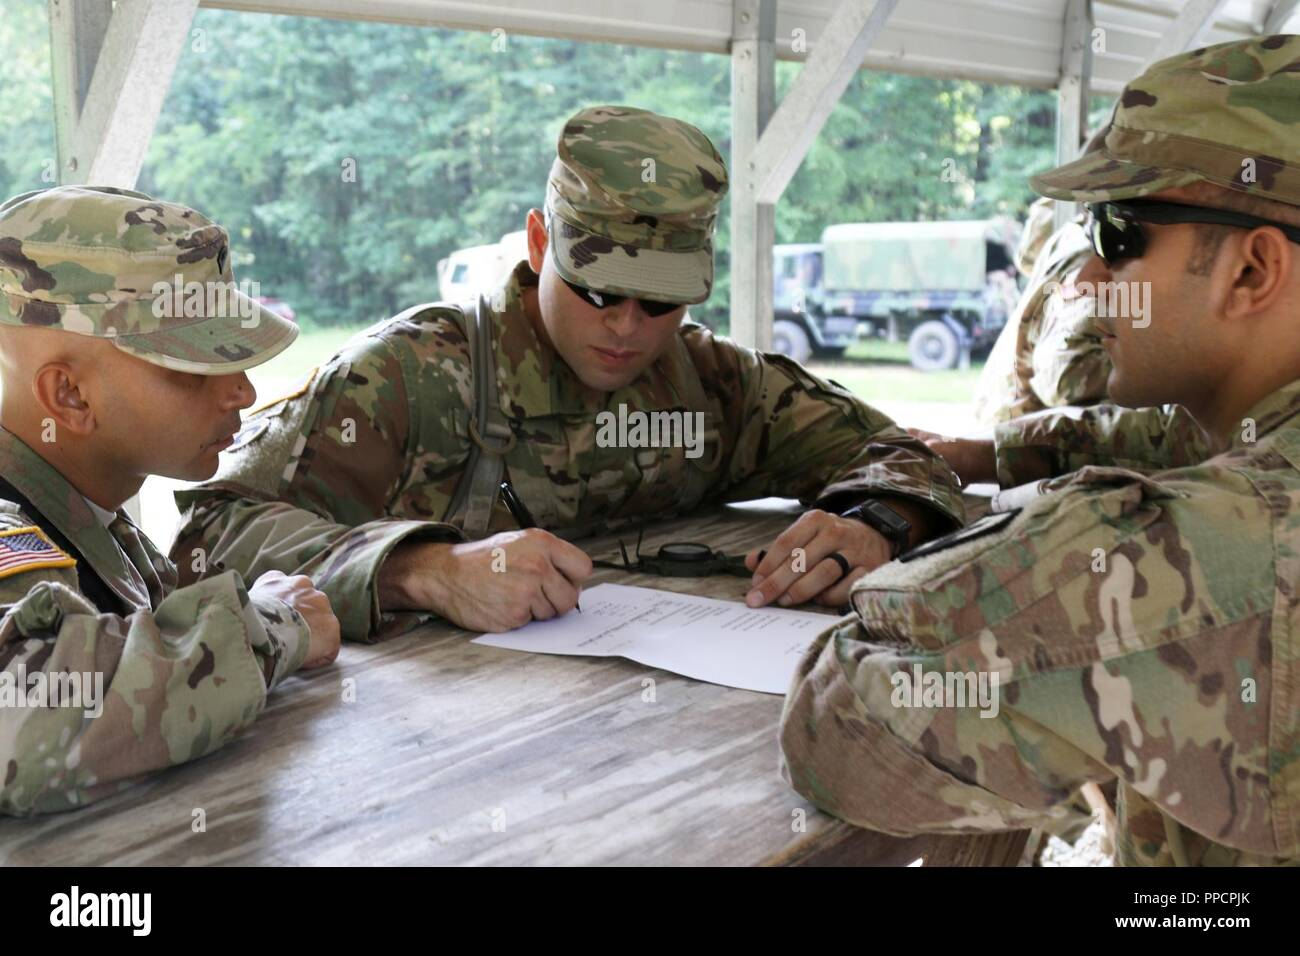 U.S. Army Sgt. Guillermo Ortiz of San Juan, Puerto Rico, a team leader with the 246th Quartermaster Company, locates a point on a map as part of a land navigation test at Fort Pickett, Va., Aug. 12, 2018. More than 300 Army Reserve Soldiers from across the nation attended the Mortuary Affairs Exercise, which also included marksmanship, search and recovery operations and other training. - Stock Image